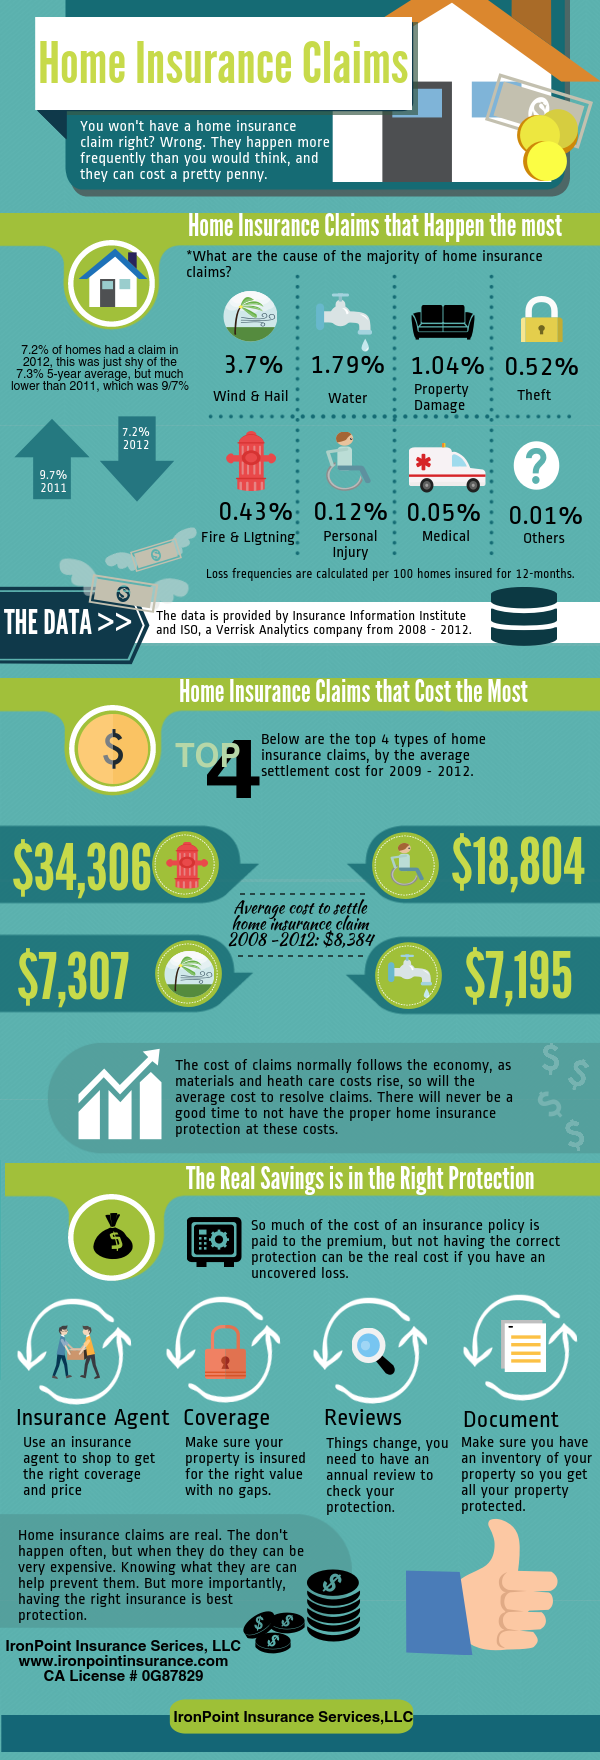 Home Insurance Claims Costs